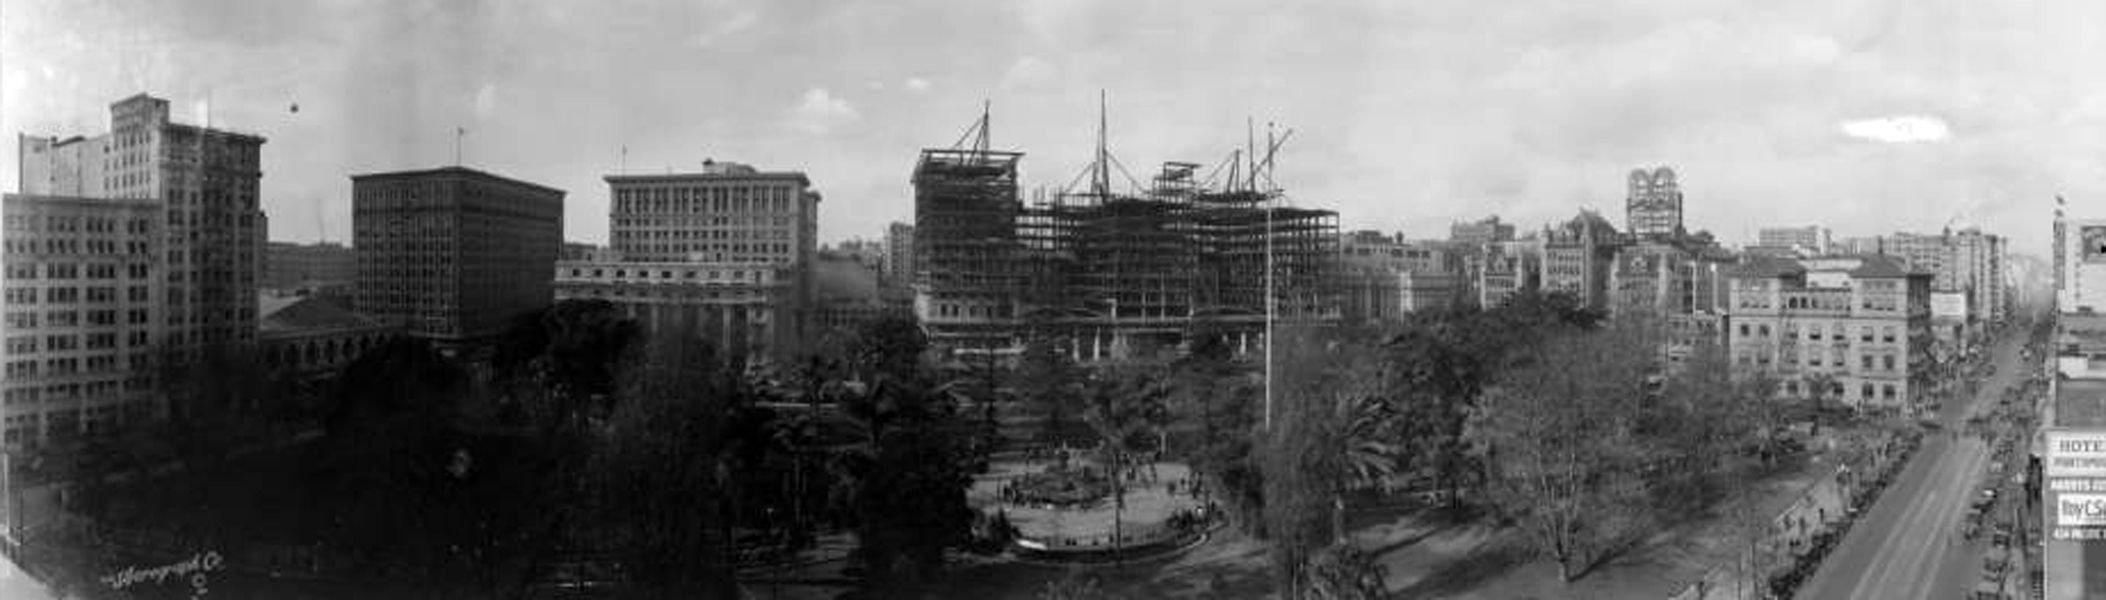 The Biltmore Hotel Under Construction In 1922 Huntington Library Bizarre Los Angeles Downtown Los Angeles Los Angeles Huntington Library